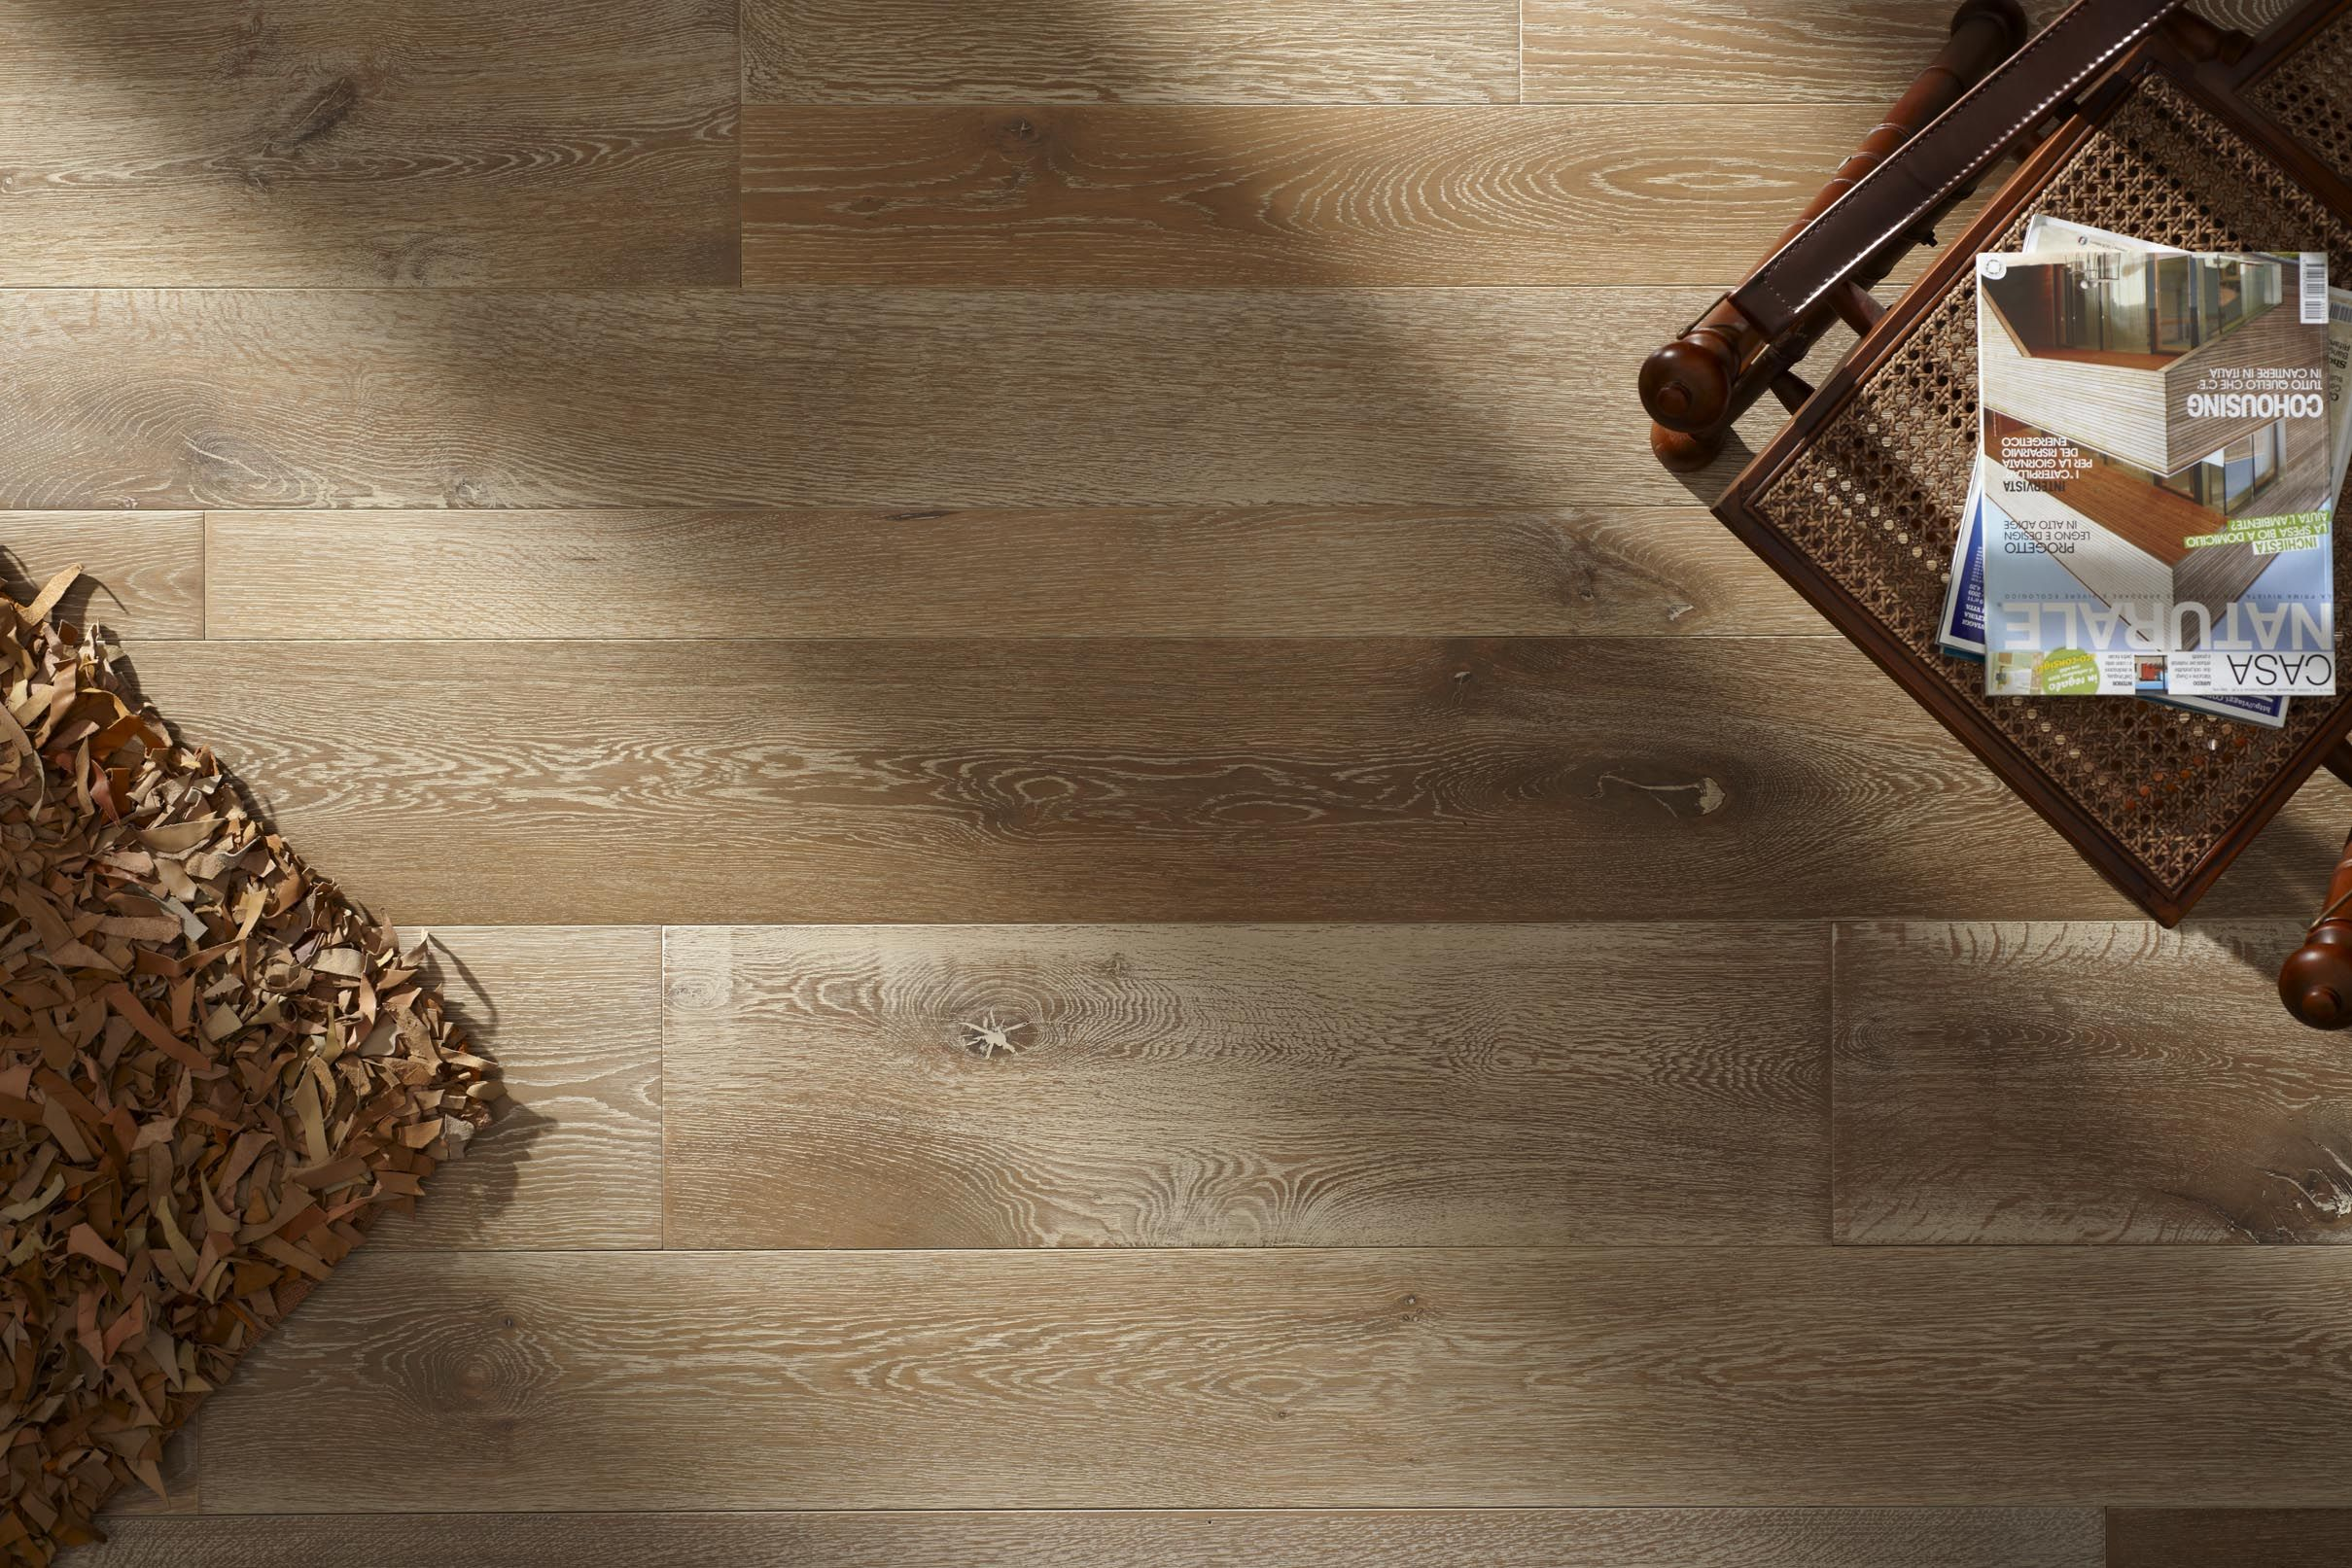 Vesuvio. The virtue of Naturalia parquet is solid Oak